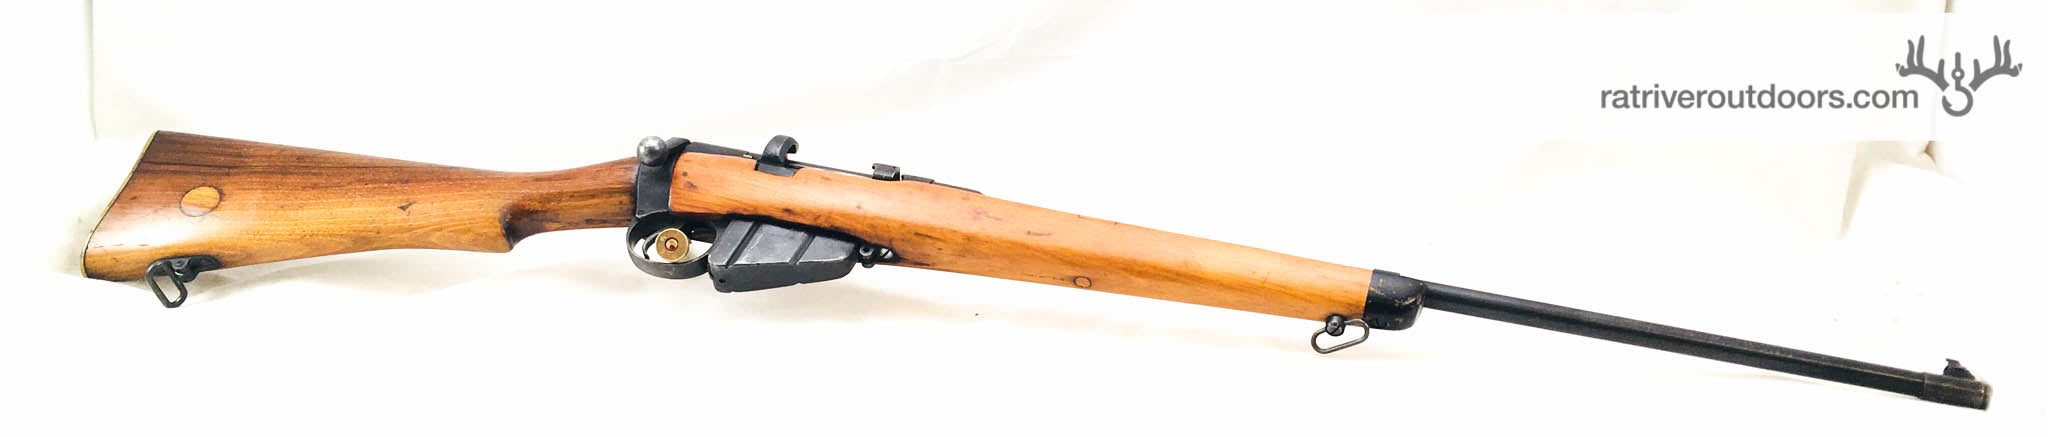 Lithgow Lee enfield MKIII 303